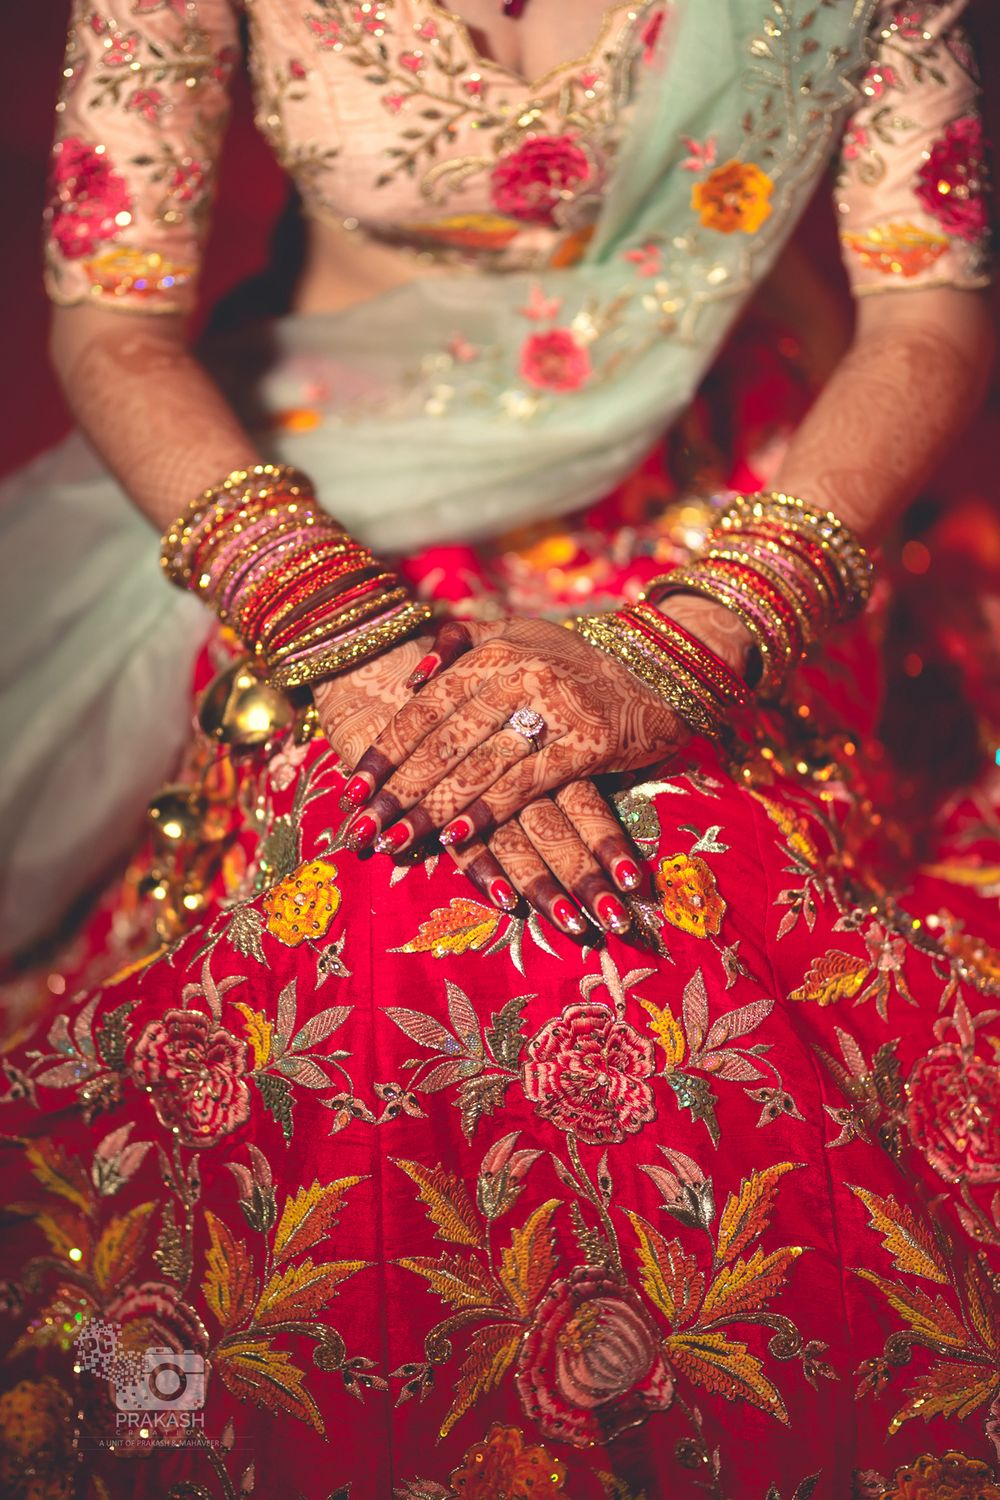 Photo of Bridal hands on floral embroidered lehenga